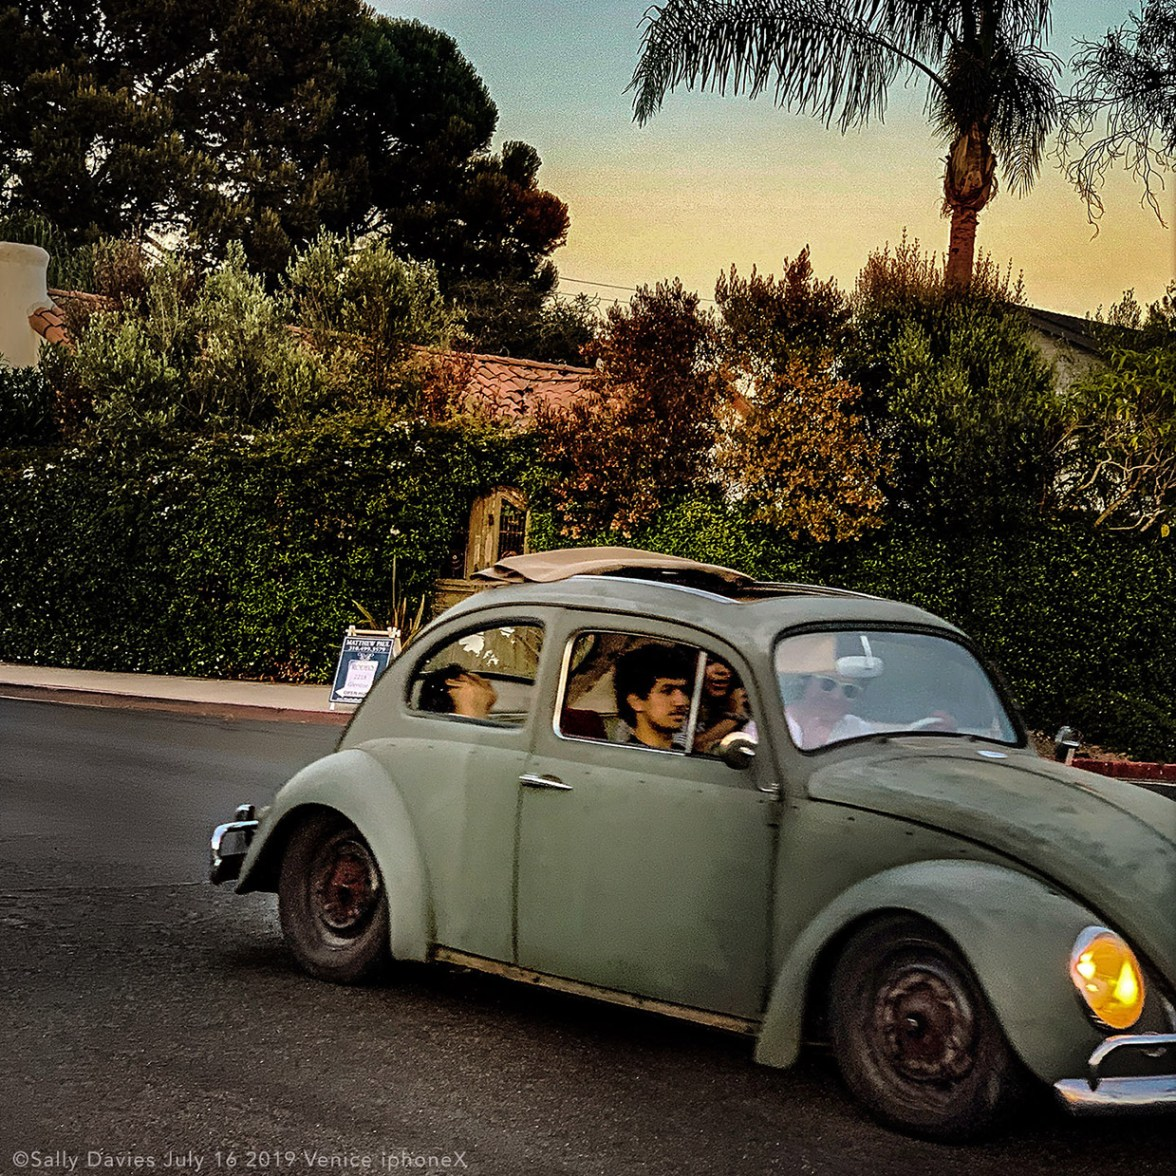 Vintage Bug, VW Beetle, 2019 © Sally Davies